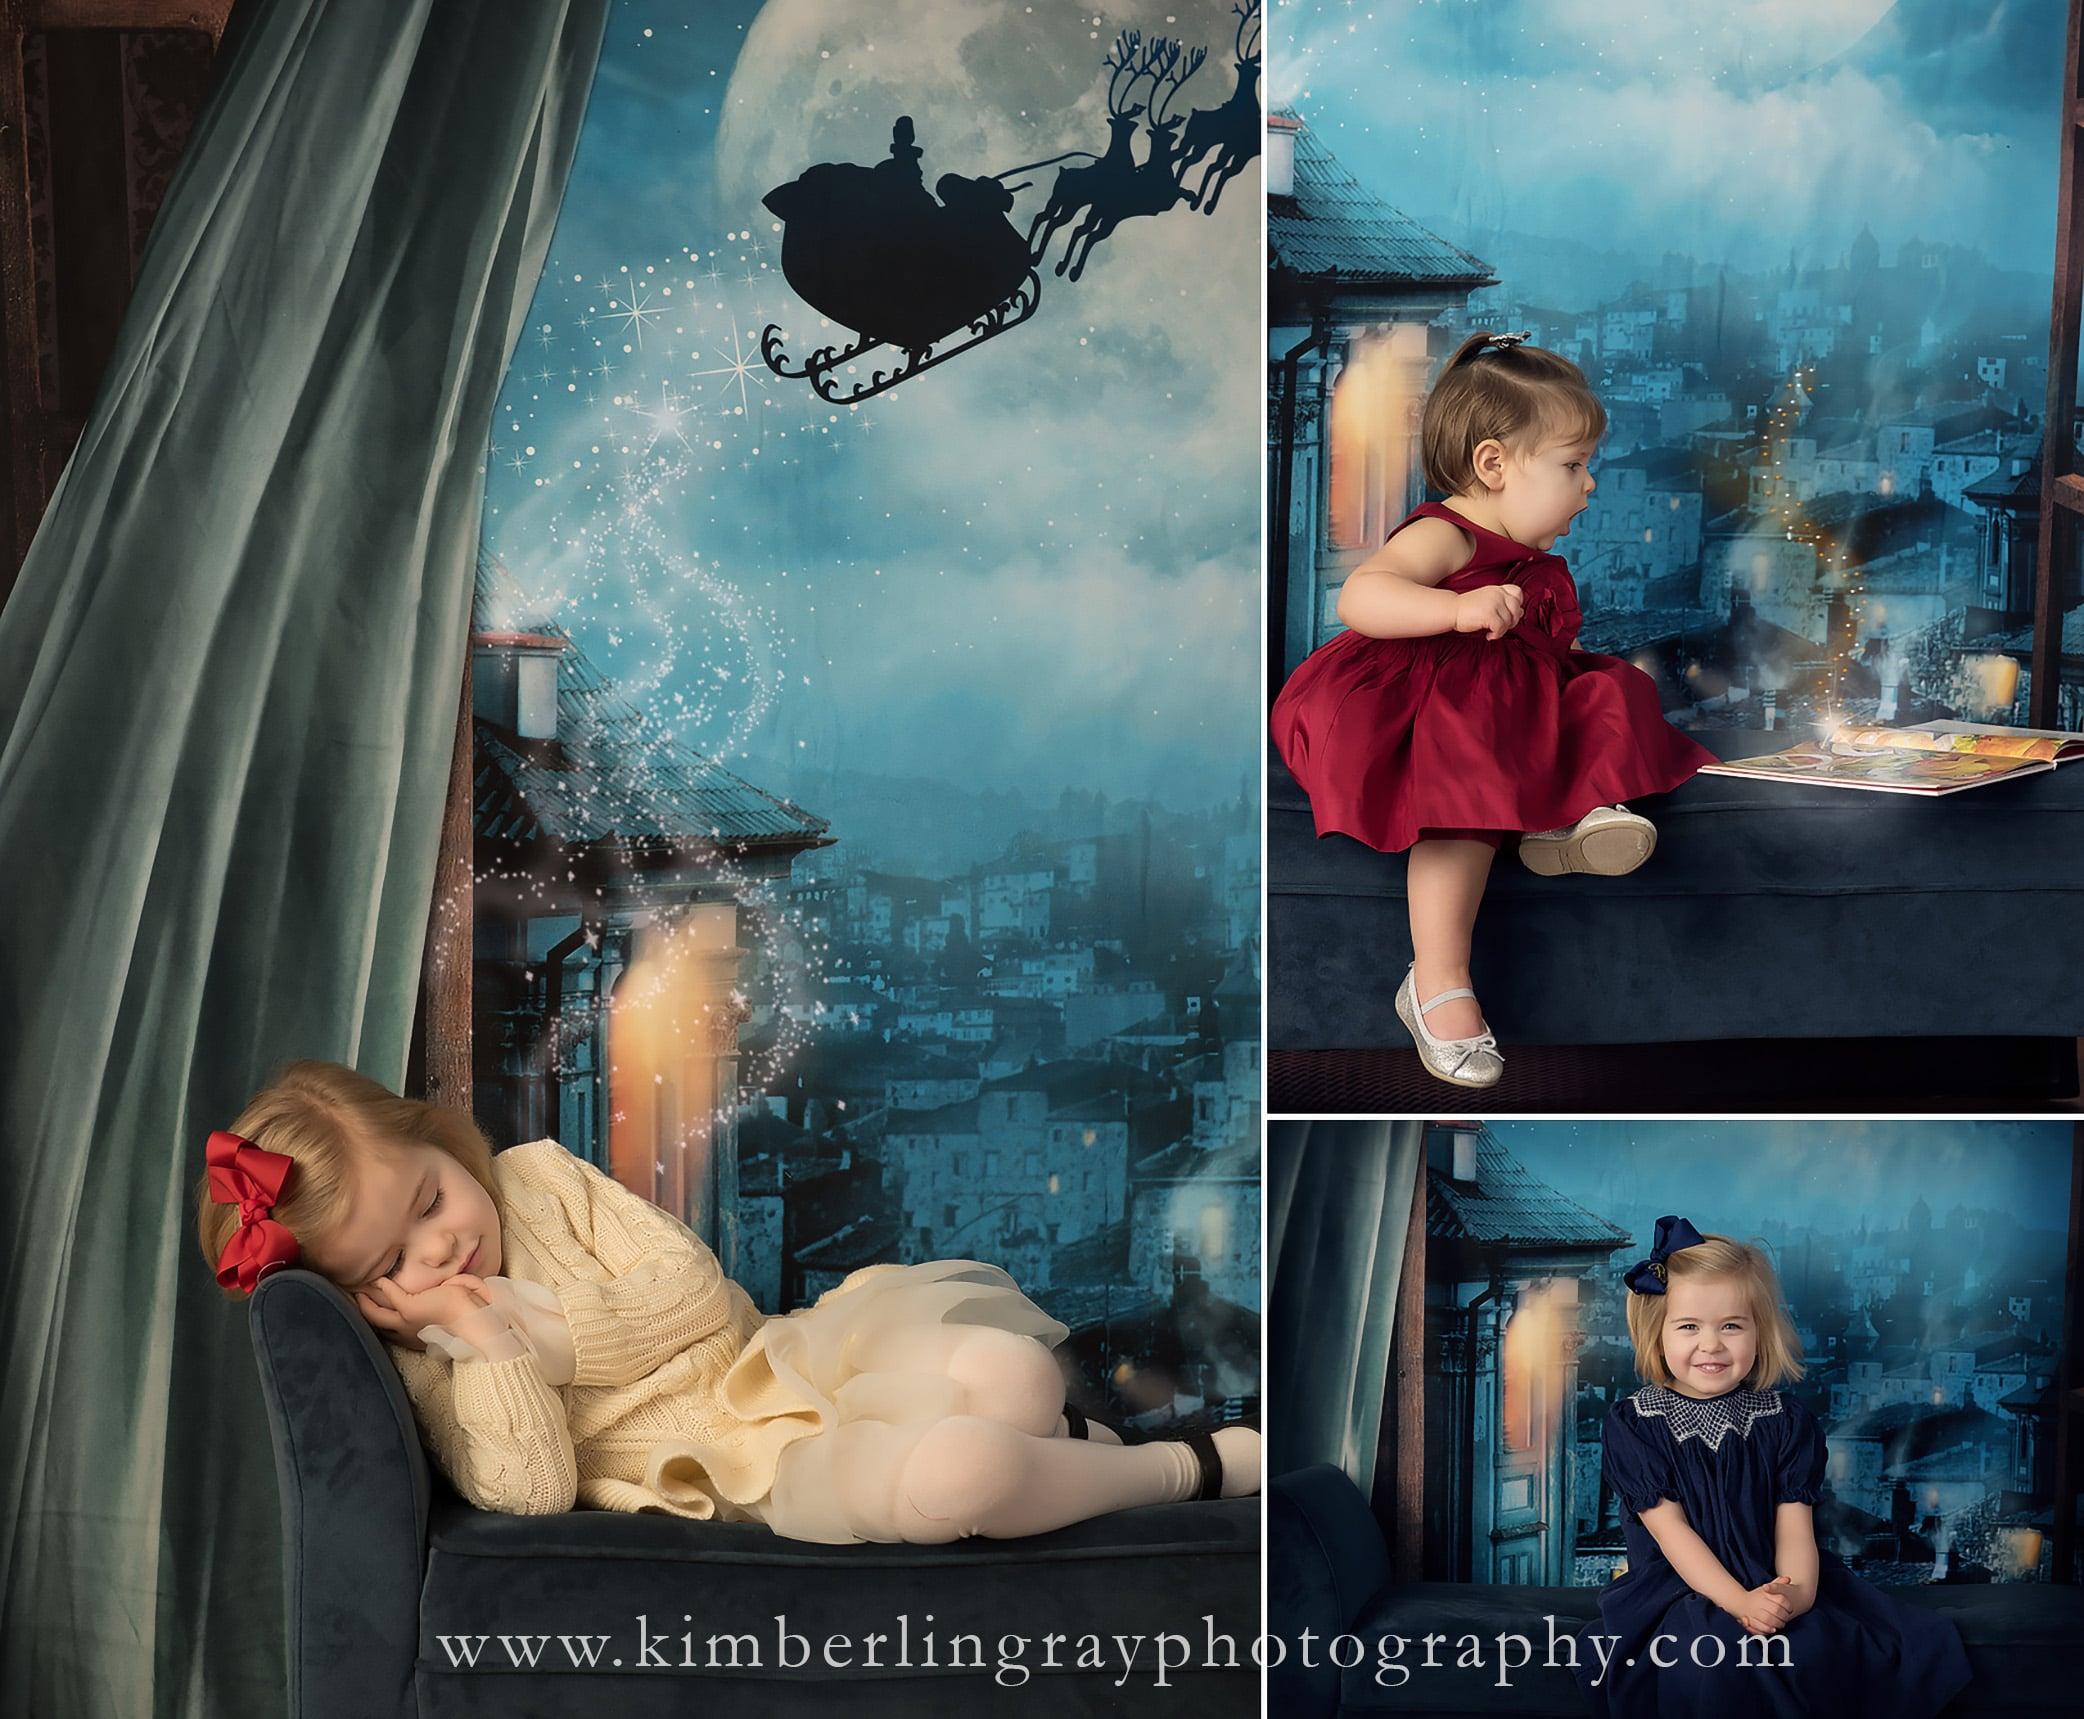 Night Before Christmas Photo | Creative Christmas Pictures | Virginia Beach Photography Studio